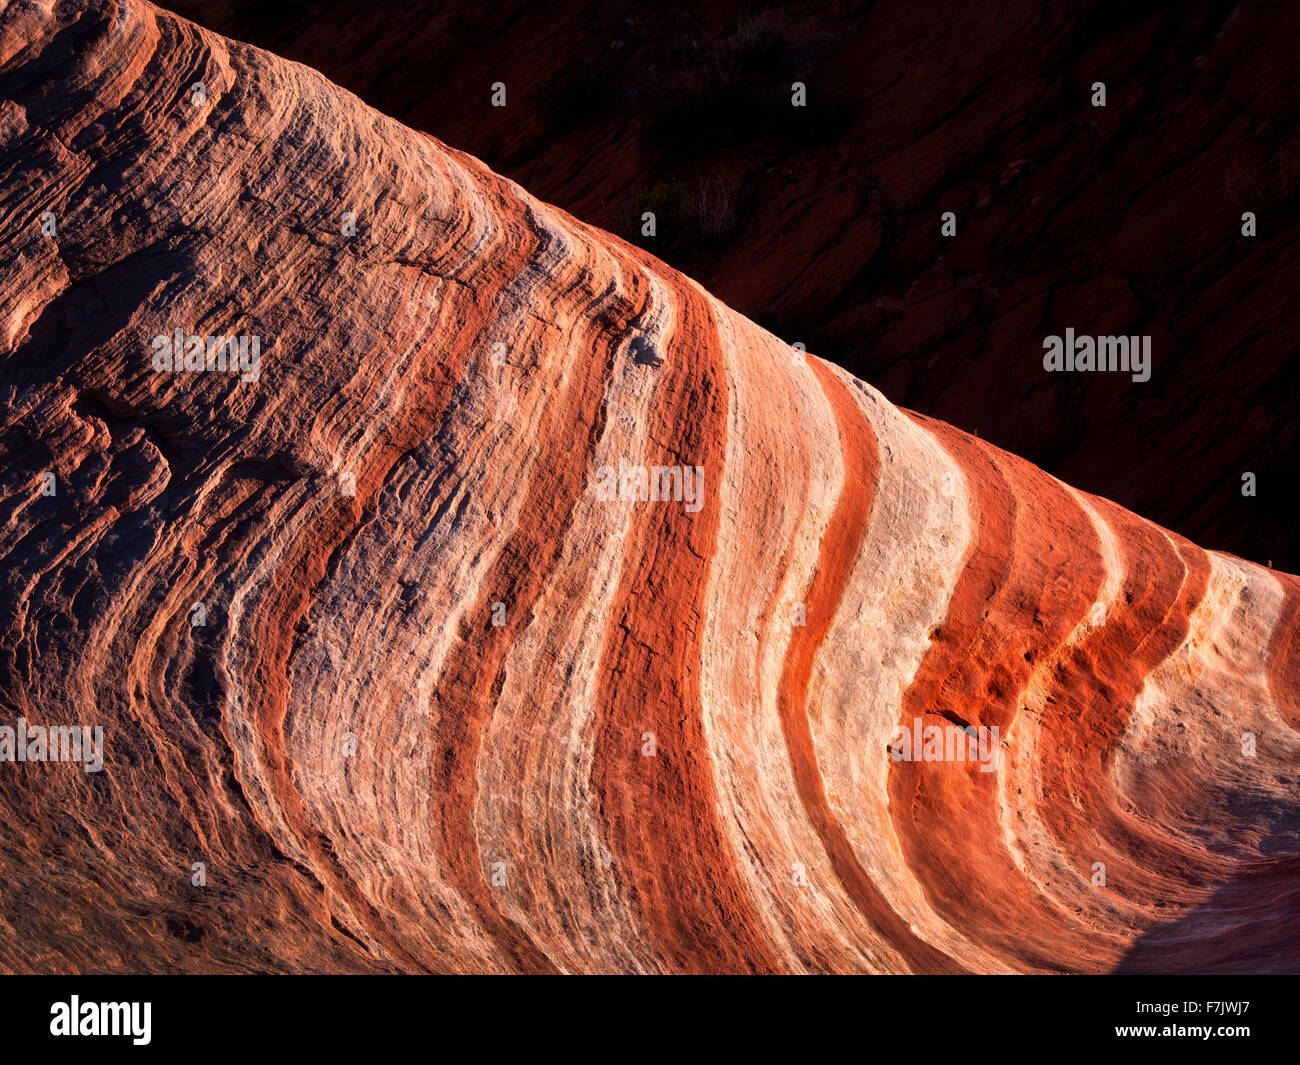 Sandstone formations at the Firewave. Valley of Fire State Park, Nevada - Stock Image